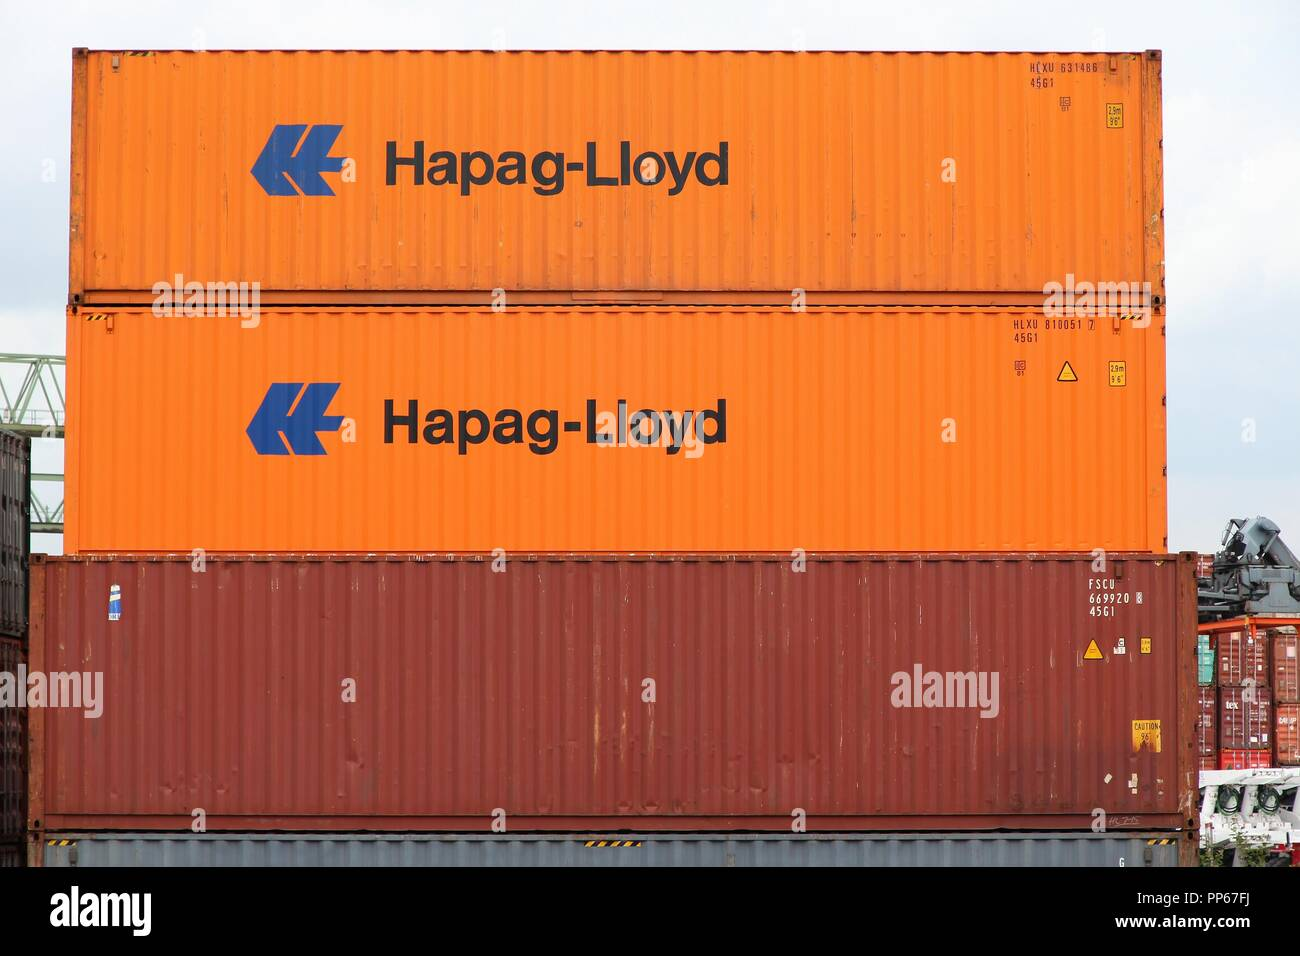 DORTMUND, GERMANY - JULY 16: Hapag Lloyd containers in Dortmund Port on July 16, 2012 in Germany. It is the largest canal port in Europe and had shipp - Stock Image